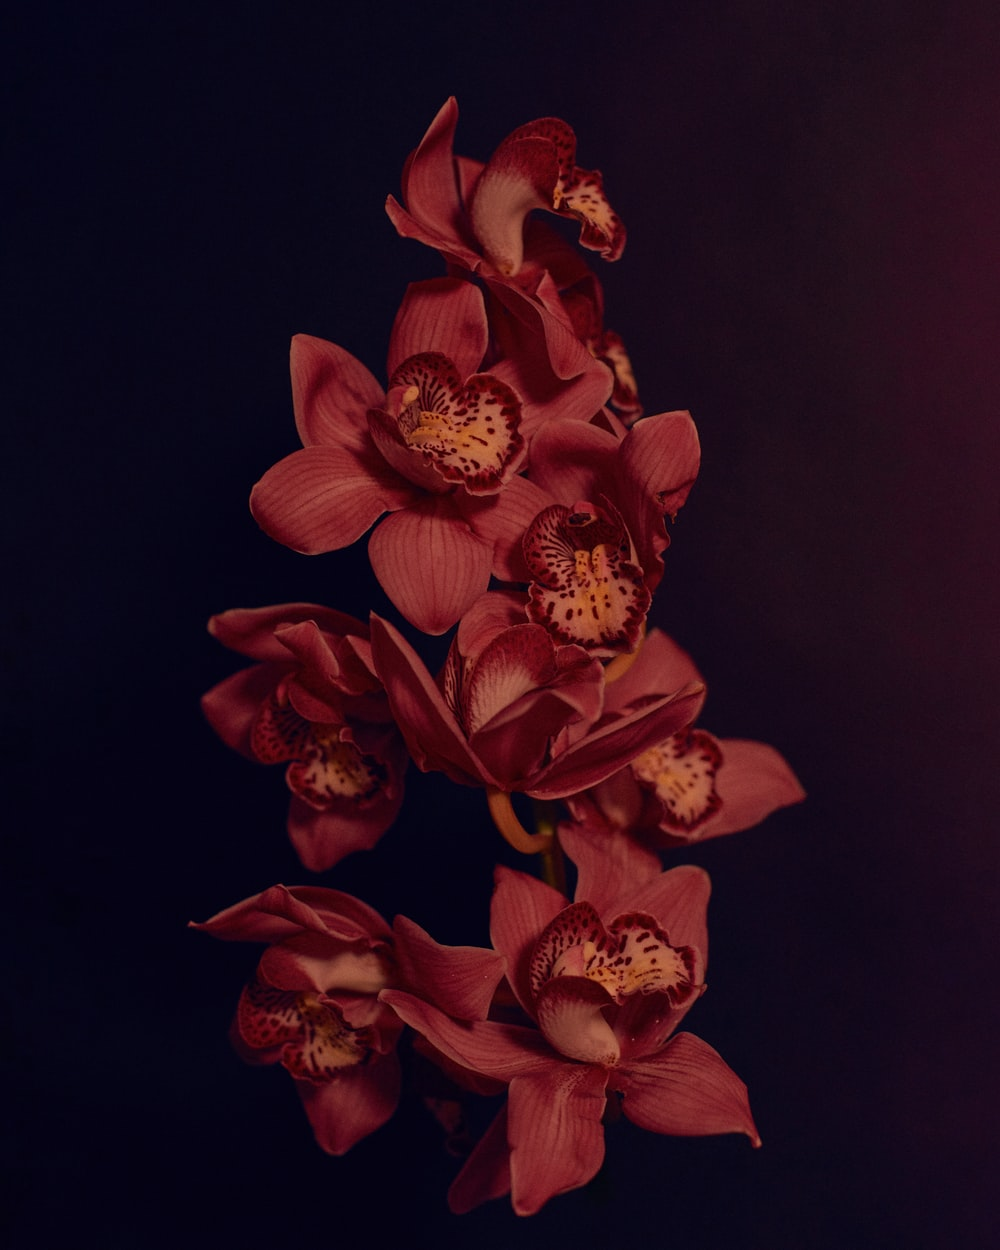 red and yellow flower in black background